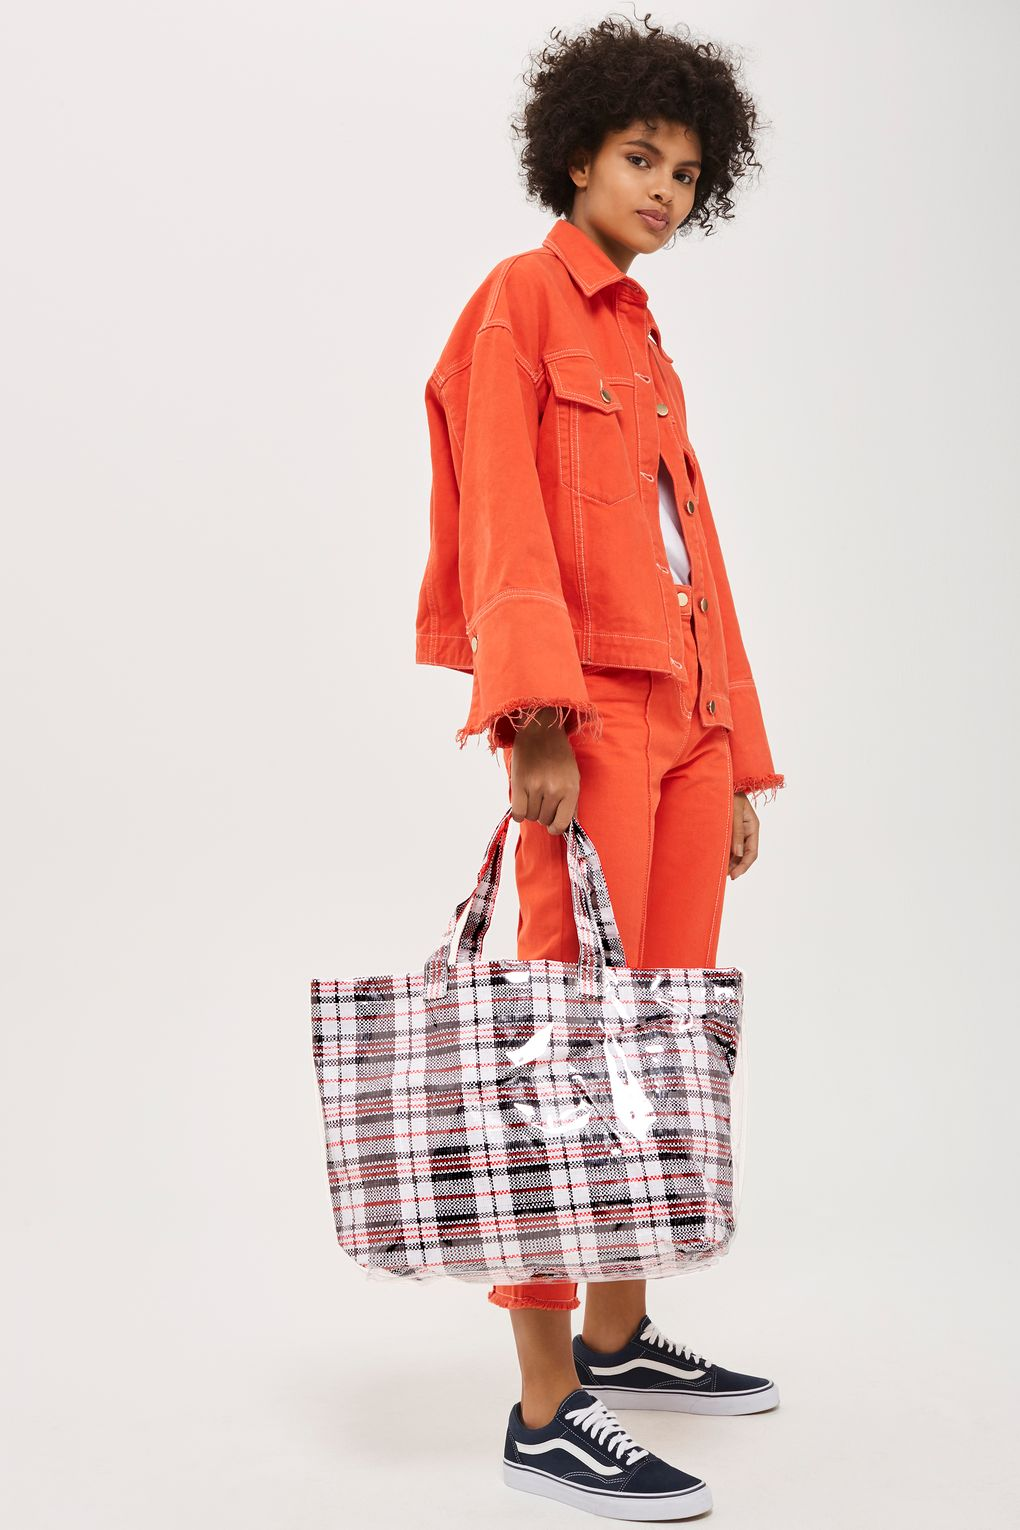 """Accessories: Would You Rock The """"Marty Check -Ghana-Must-Go Tote Bag"""" For £22.00?"""